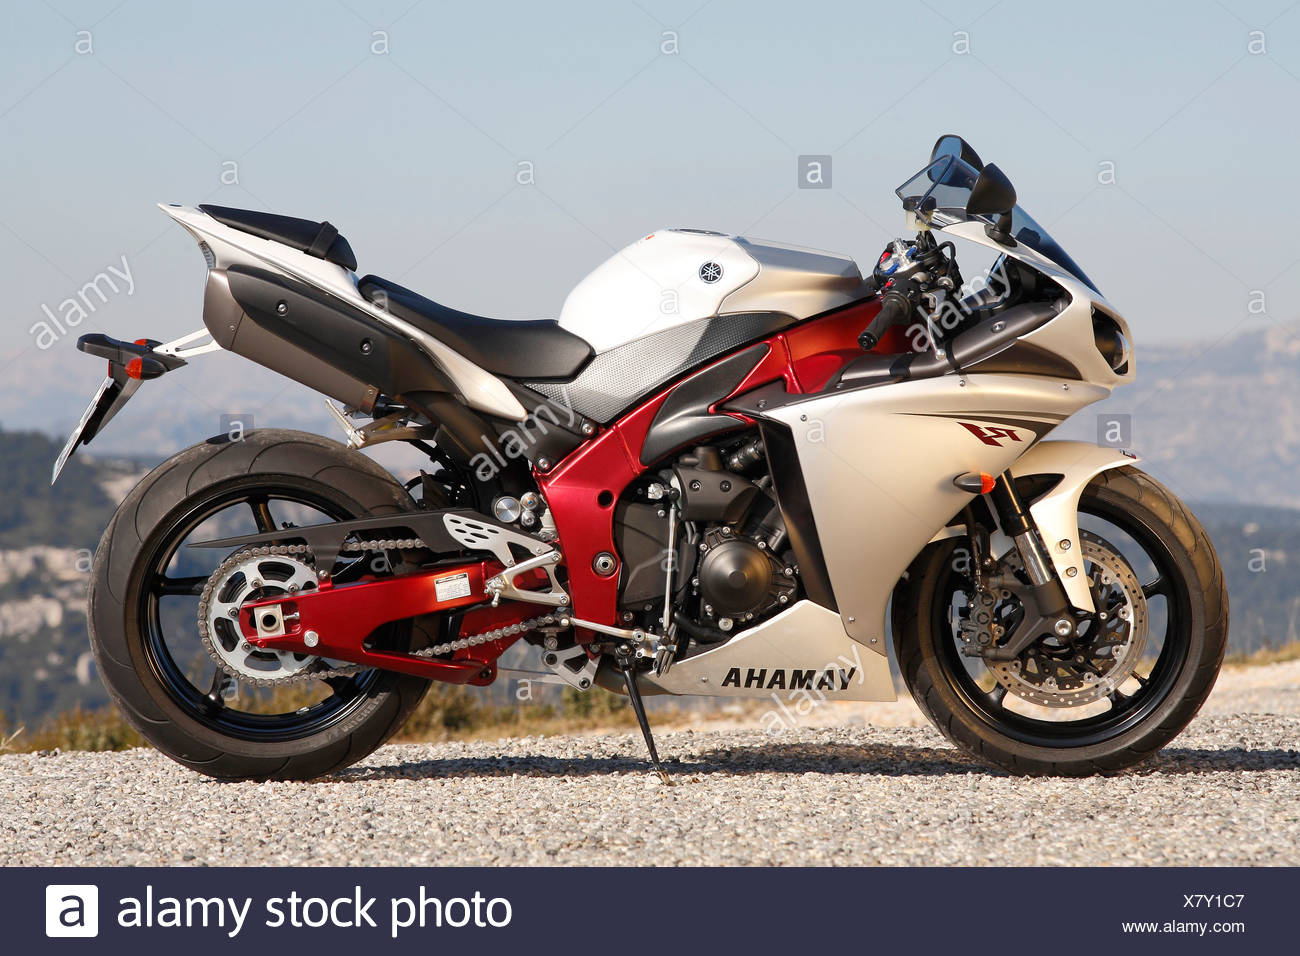 Yamaha YZF R1, motorcycle Stock Photo: 280262311 - Alamy